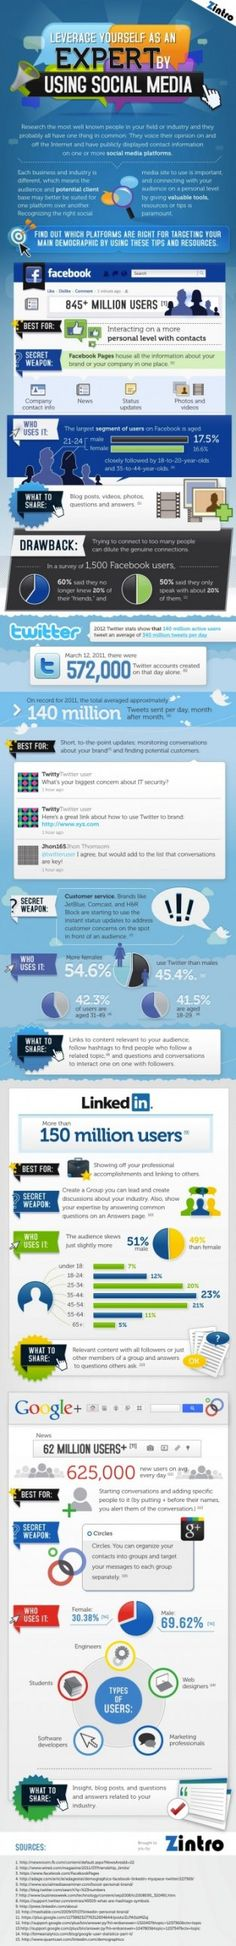 What is Facebook best for? How about Twitter, LinkedIn, Google ? This infographic has all you need to know to leverage social networks.